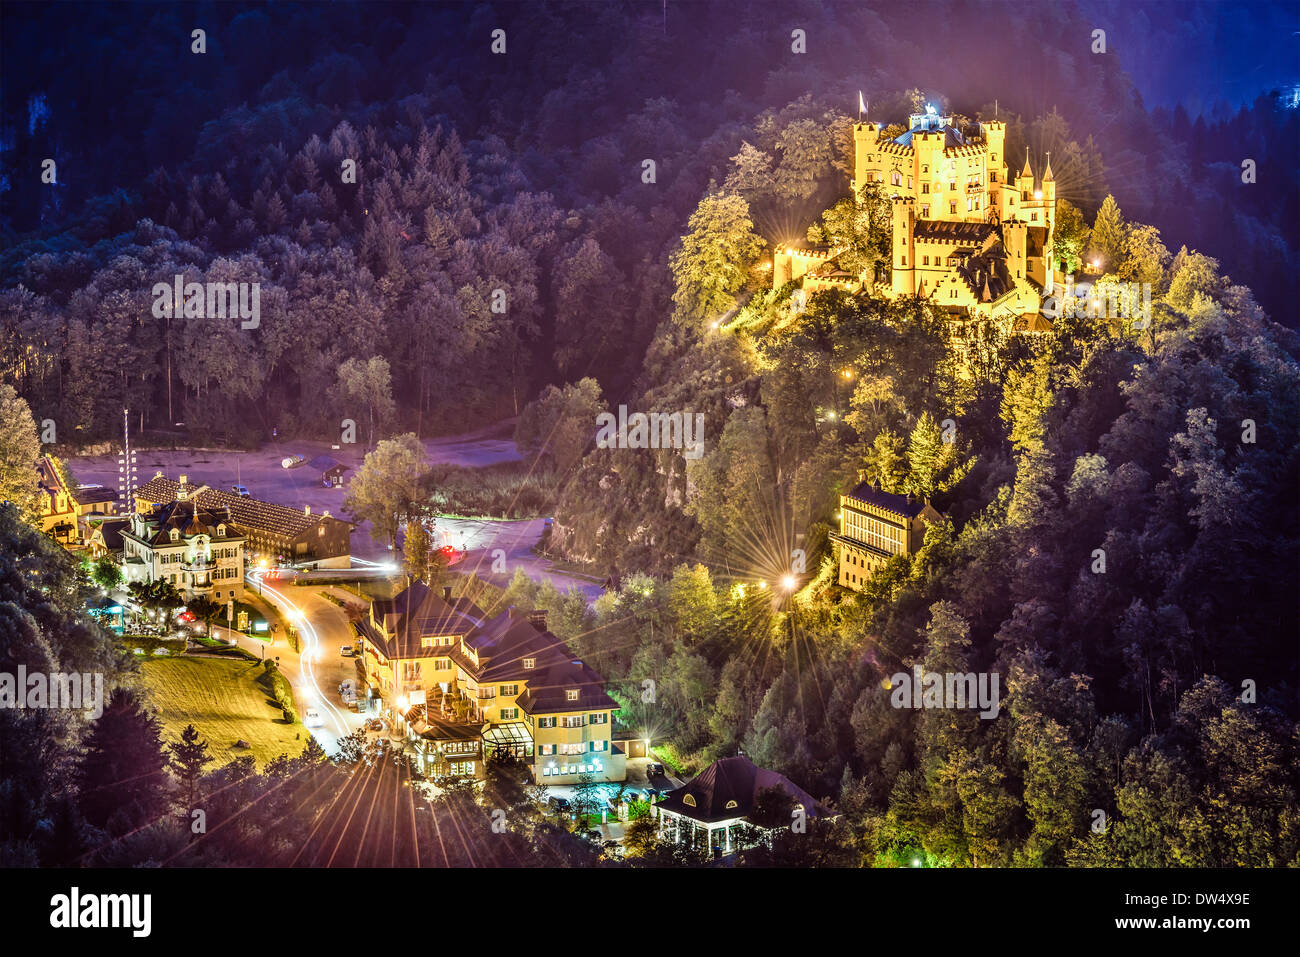 Hohenschwangau Castle at night in the Bavarian Alps of Germany. - Stock Image